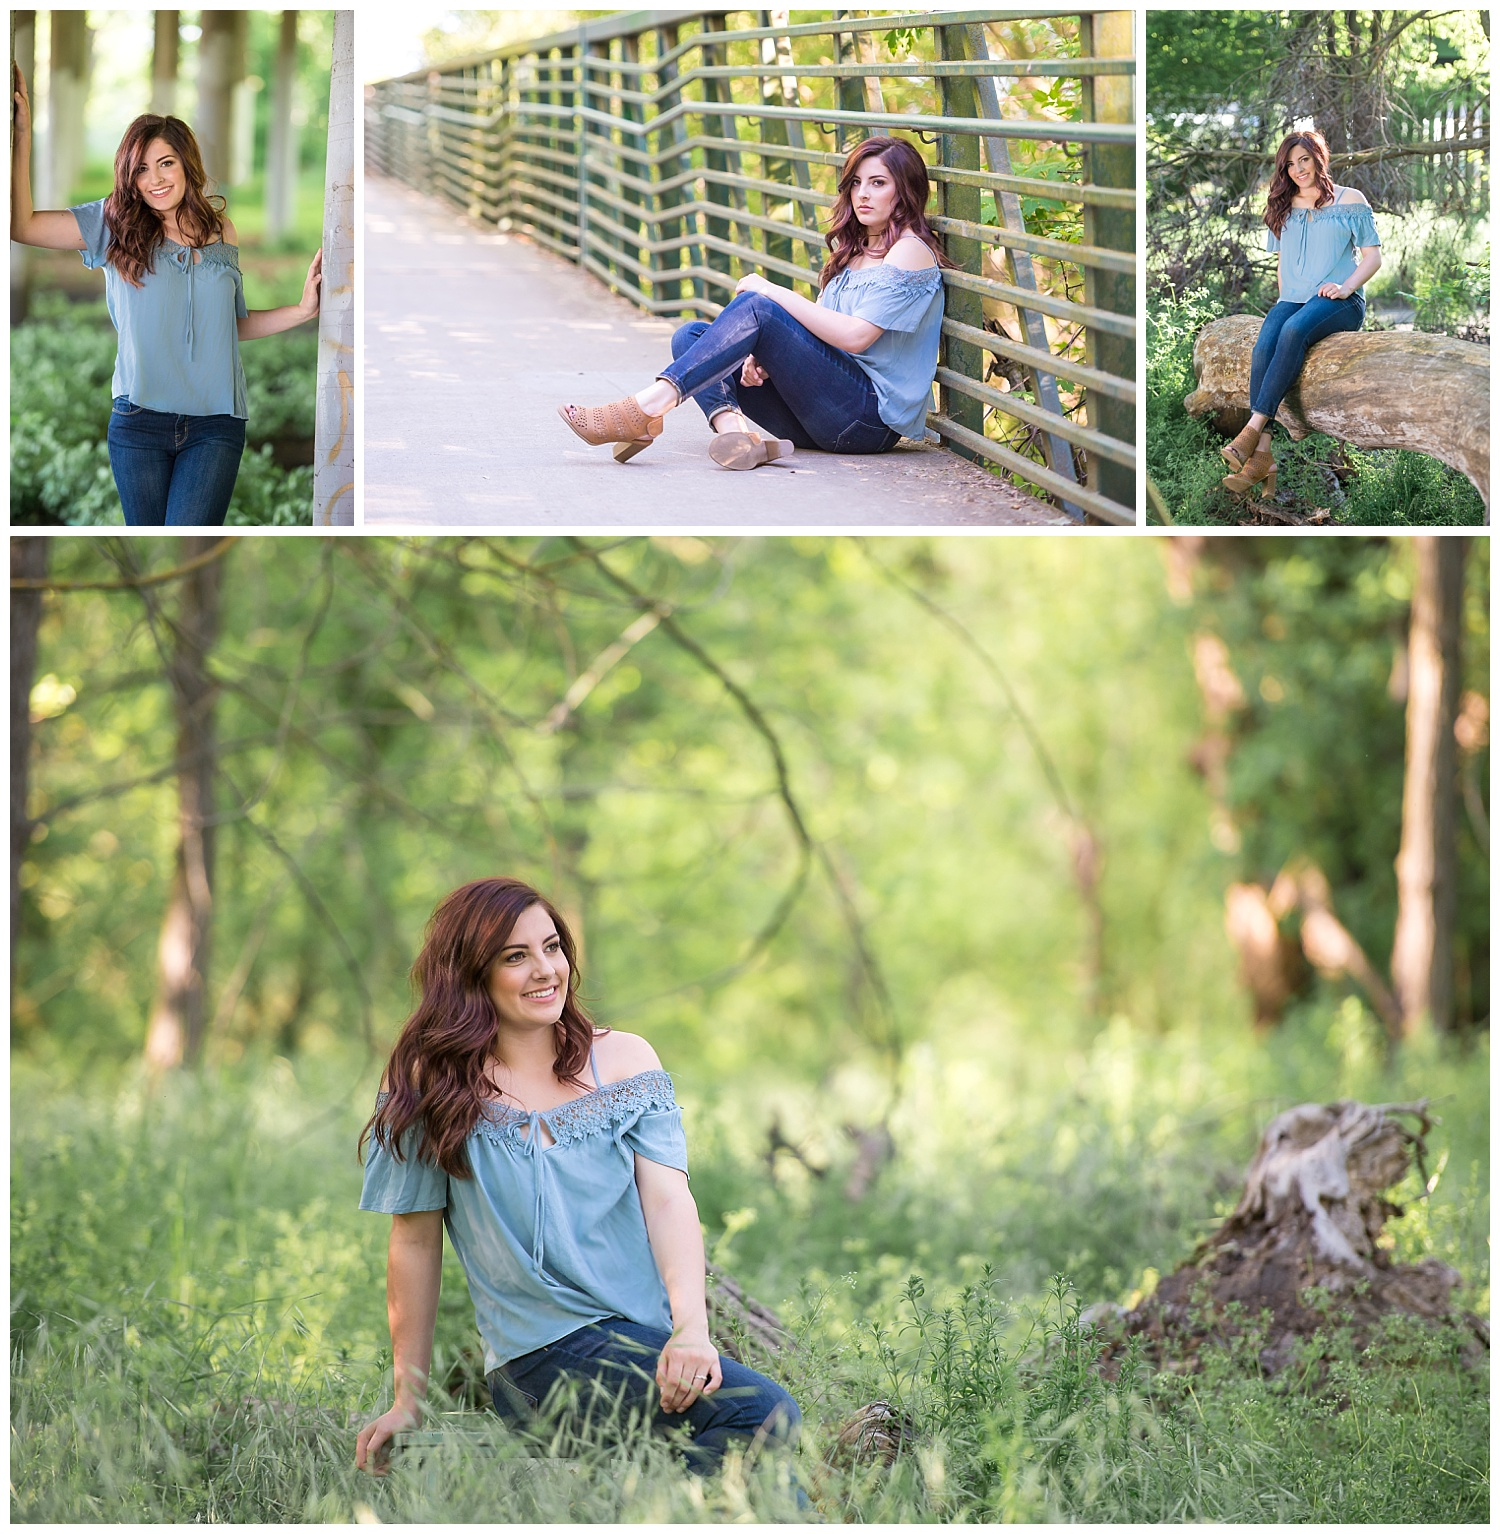 Senior-Photography-Ripon.jpg